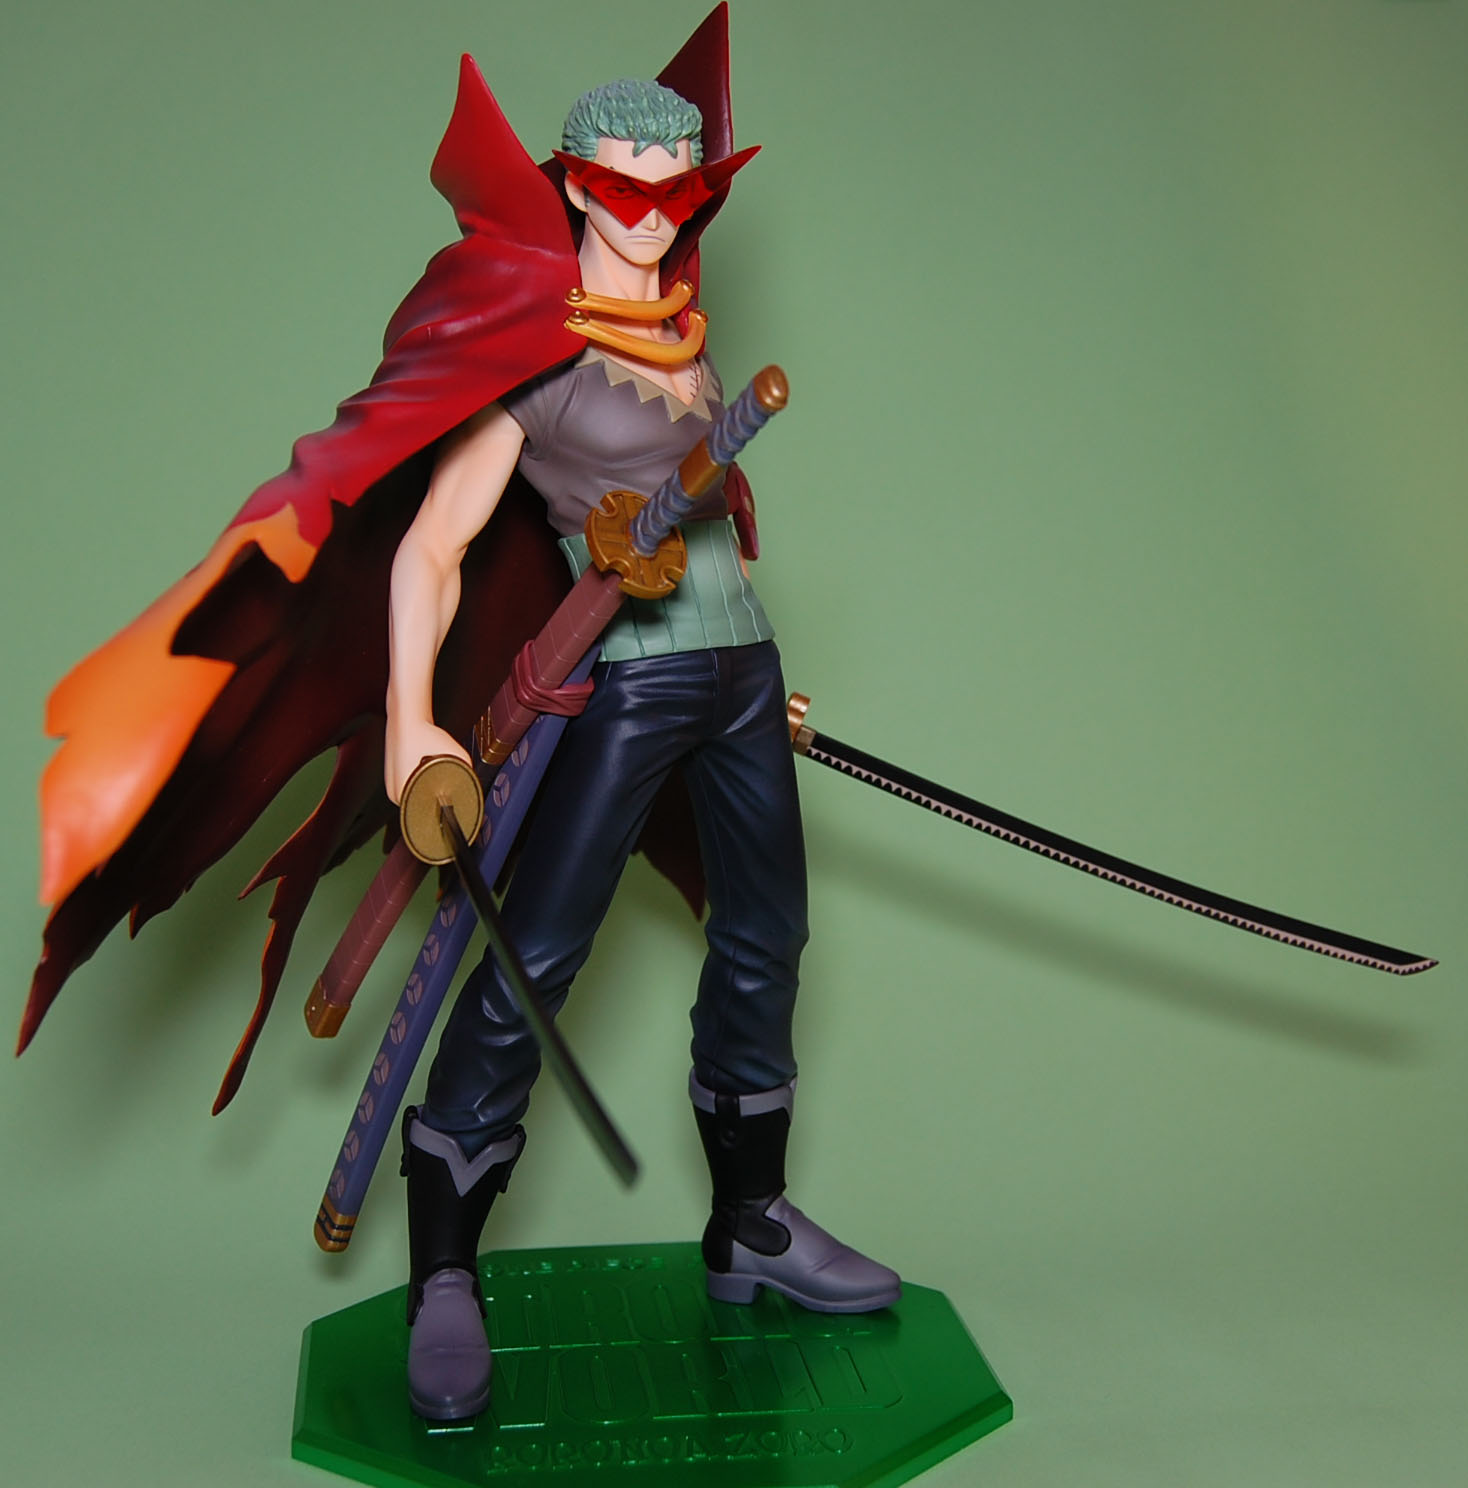 megahouse one_piece uplark roronoa_zoro kamina black_sabasu portrait_of_pirates_strong_edition tengen_toppa_gurren-lagann